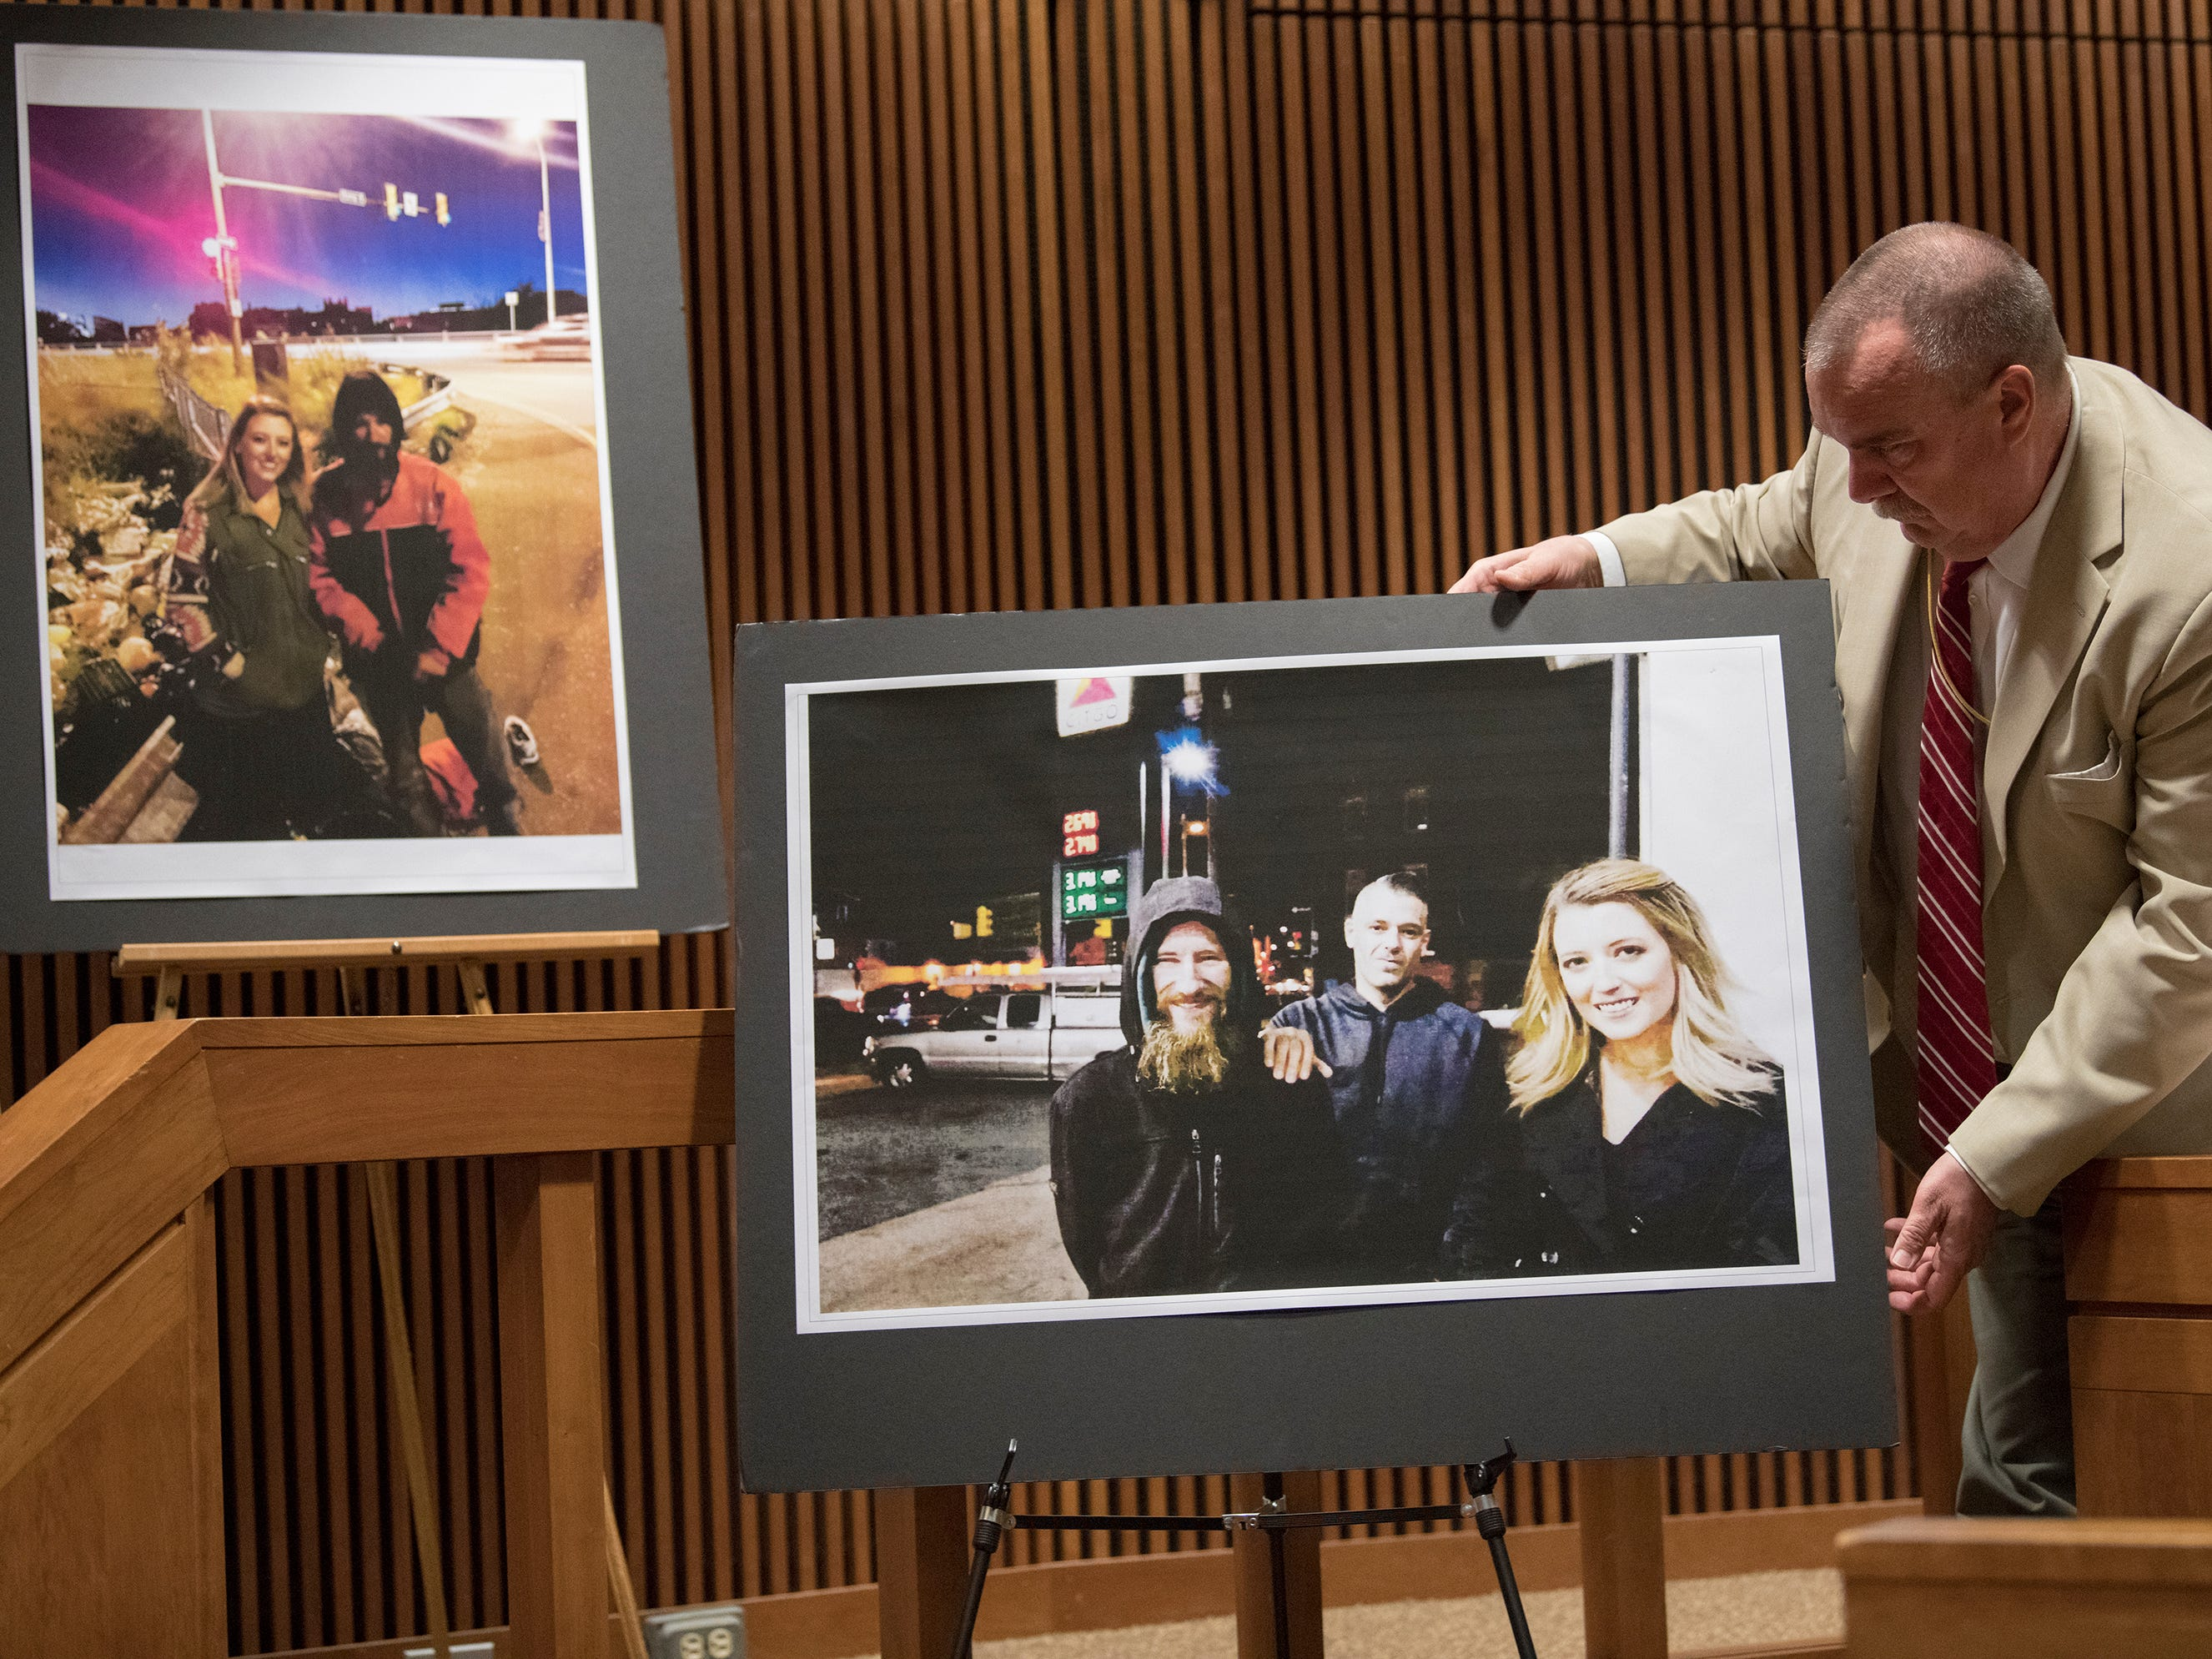 Photos of Johnny Bobbitt Jr., pictured with Burlington County residents Mark D'Amico and Katelyn McClure,  are displayed in a Burlington County Superior Court courtroom as Bobbitt is sentenced on the charge of conspiracy to commit theft by deception on Friday, April 12, 2019.  Bobbitt received a 5-year Drug Court probationary term, including long-term in-patient treatment, for his role in a GoFundMe scam.